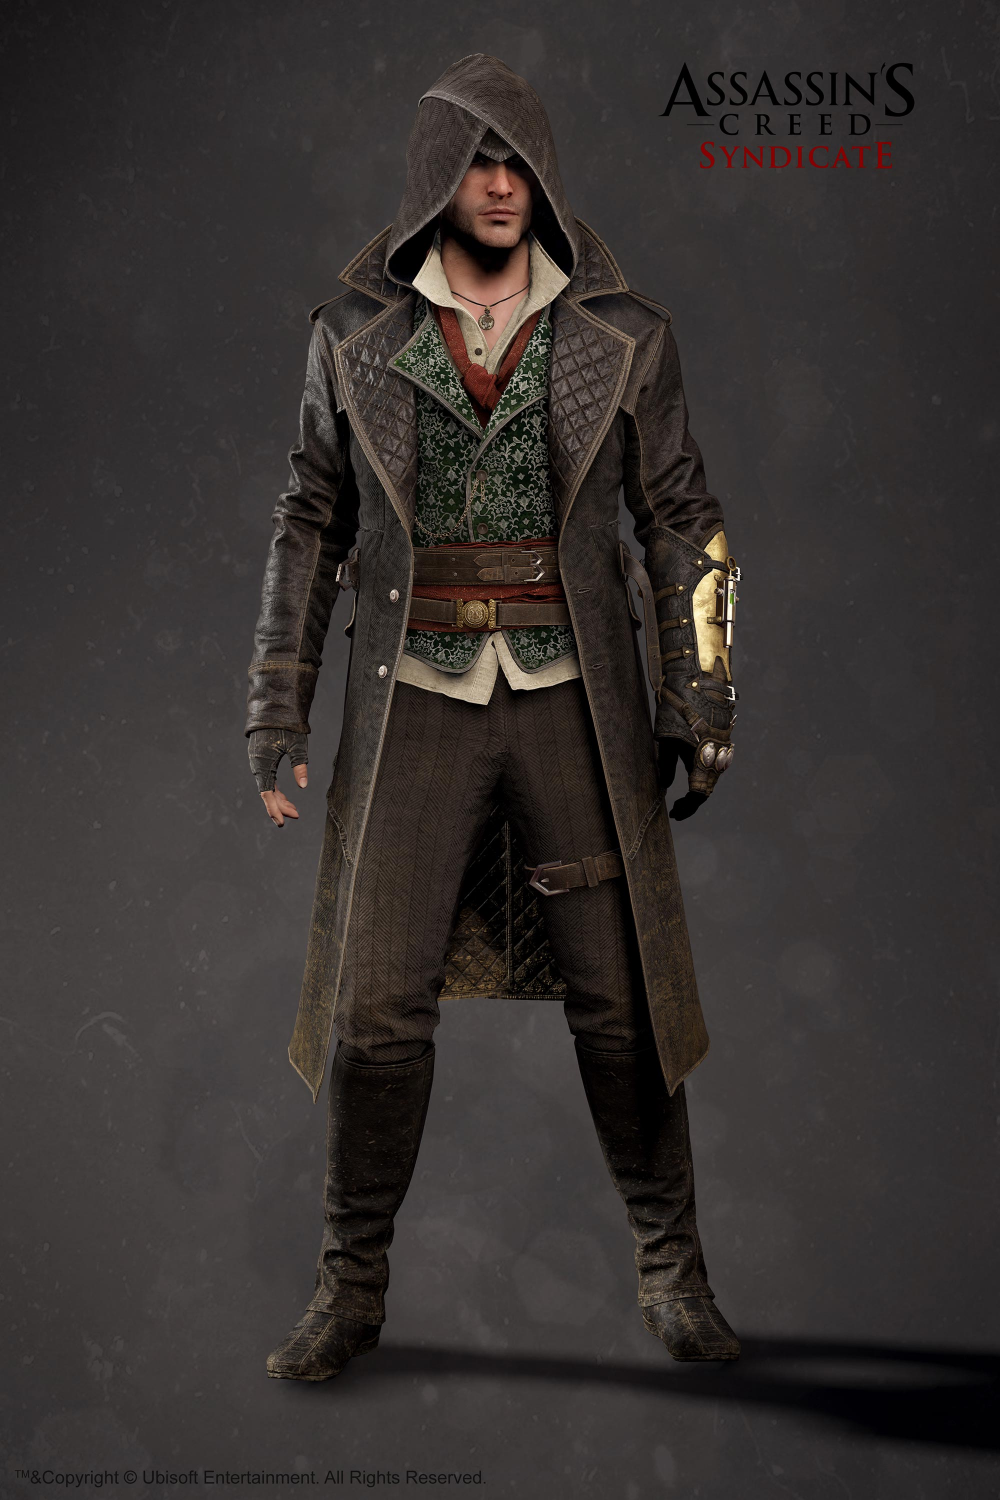 Assassin S Creed Syndicate Character Team Post Assassins Creed Assassins Creed Outfit Assassins Creed Syndicate